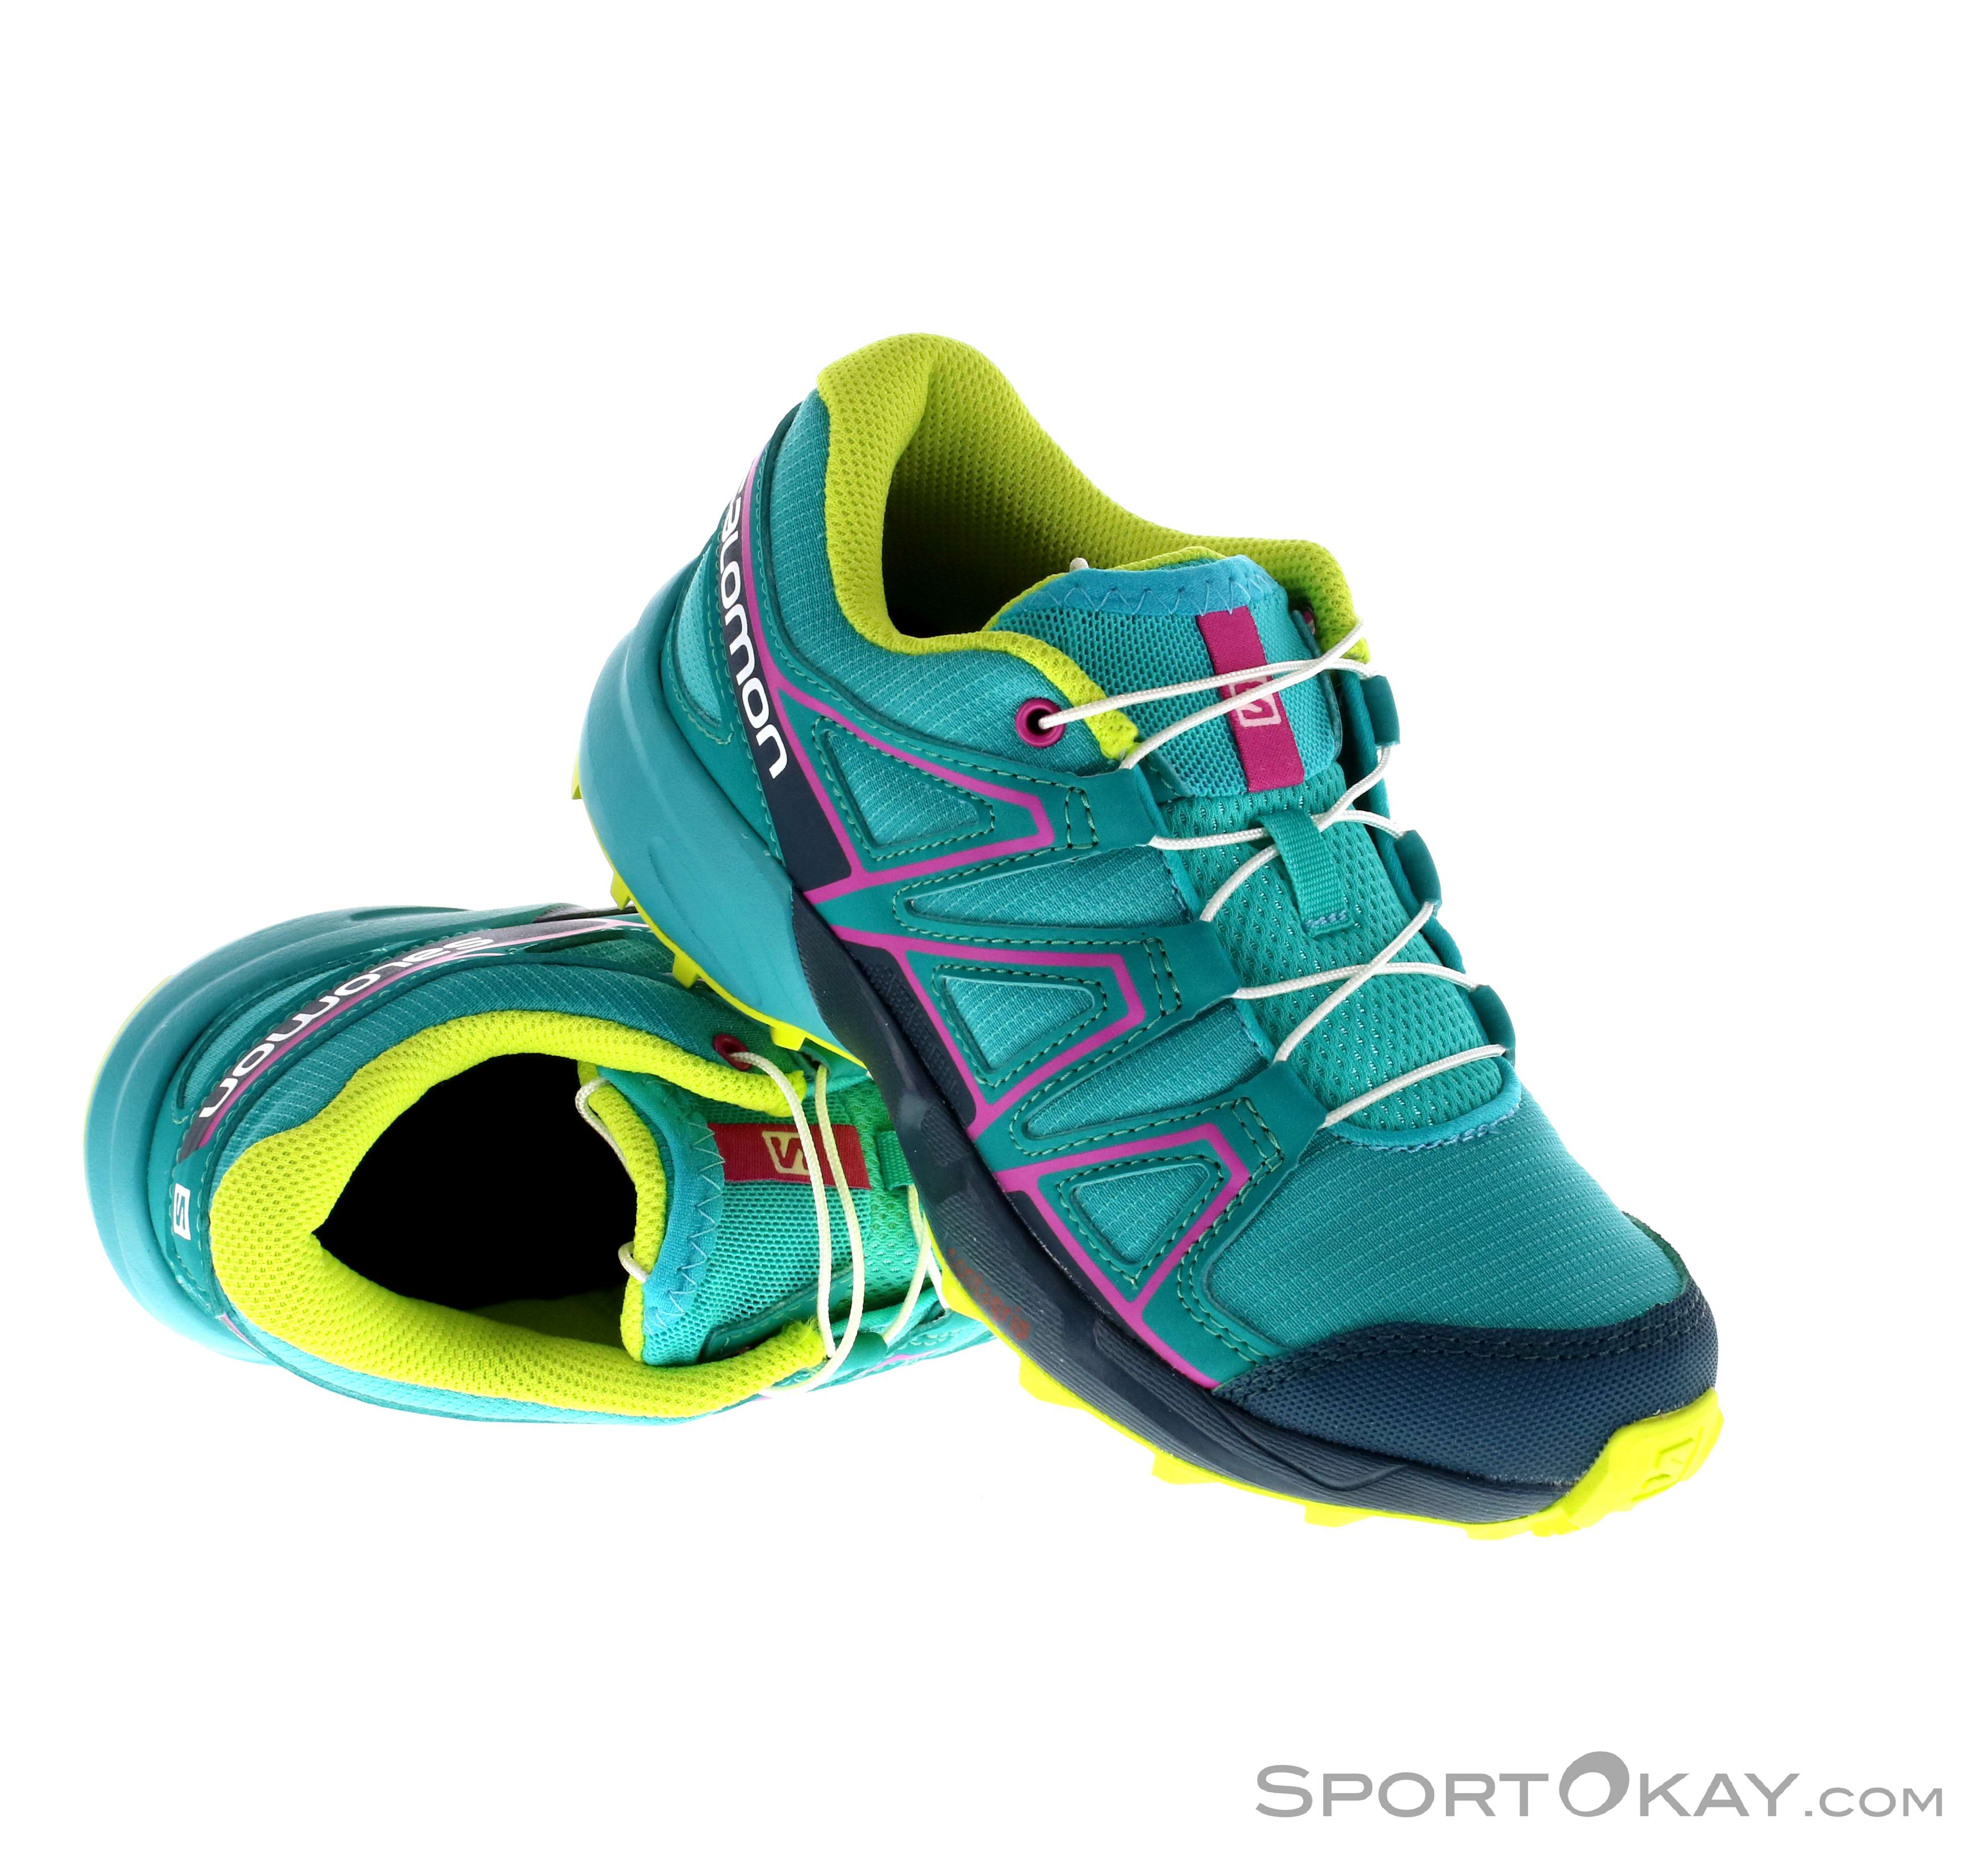 scarpa salomon snow gross